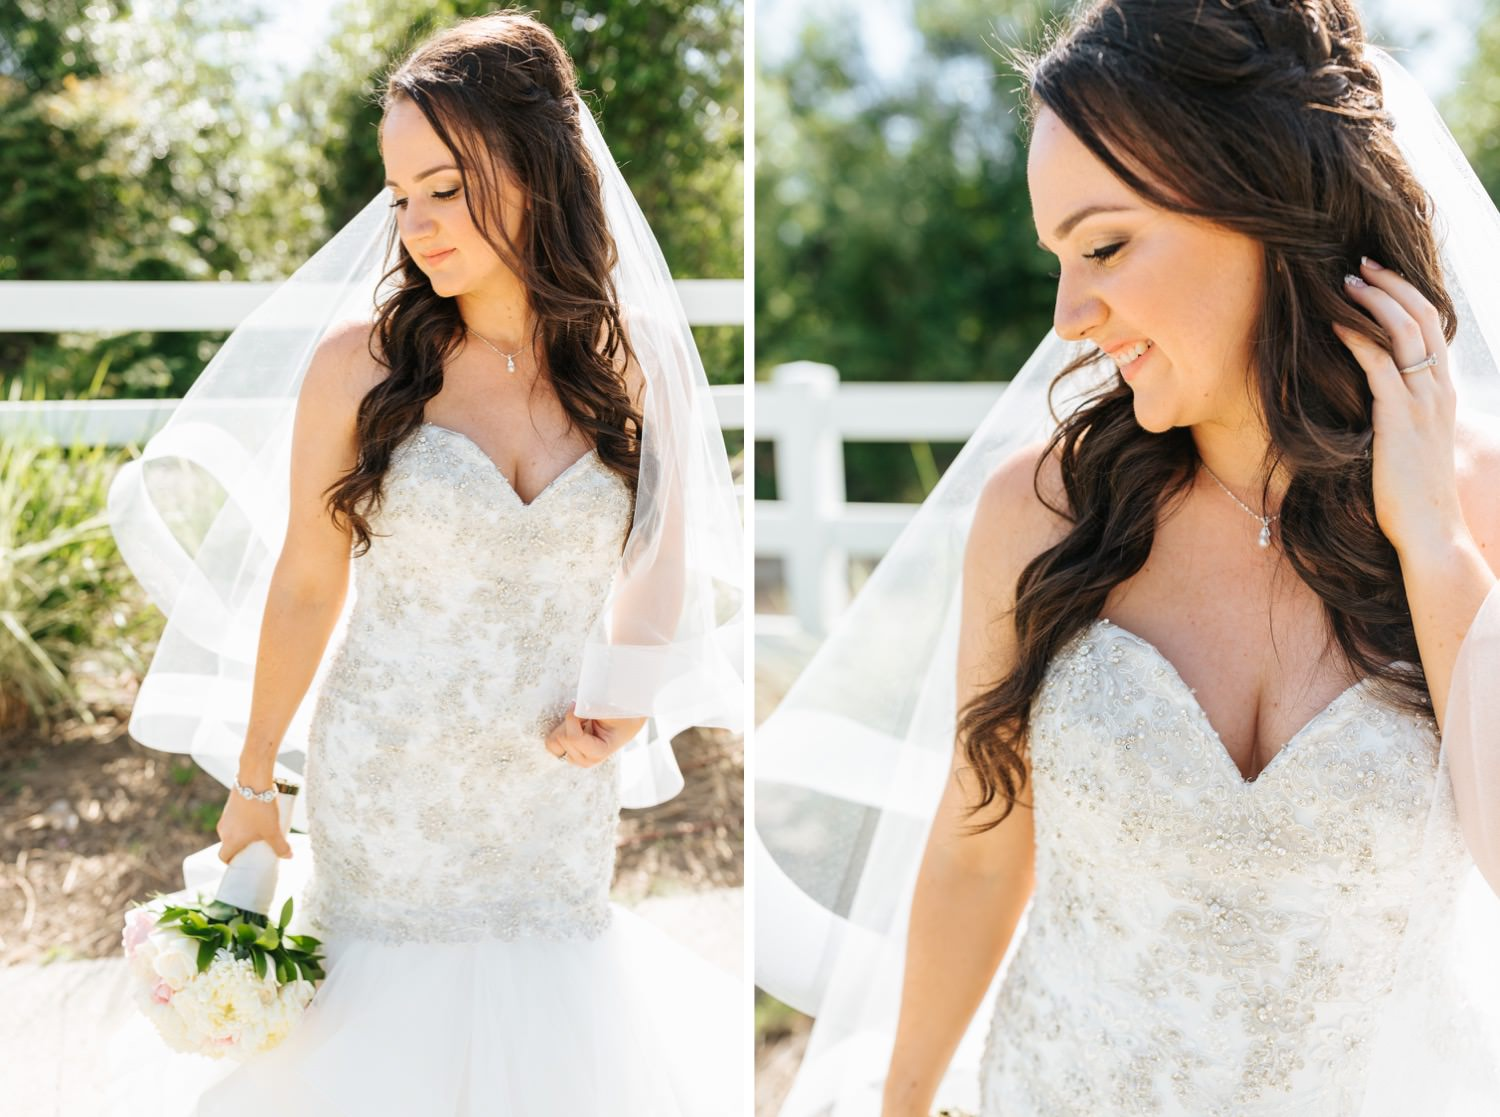 Southern California Wedding Photographer - Natural Light Bridal Photos - https://brittneyhannonphotography.com